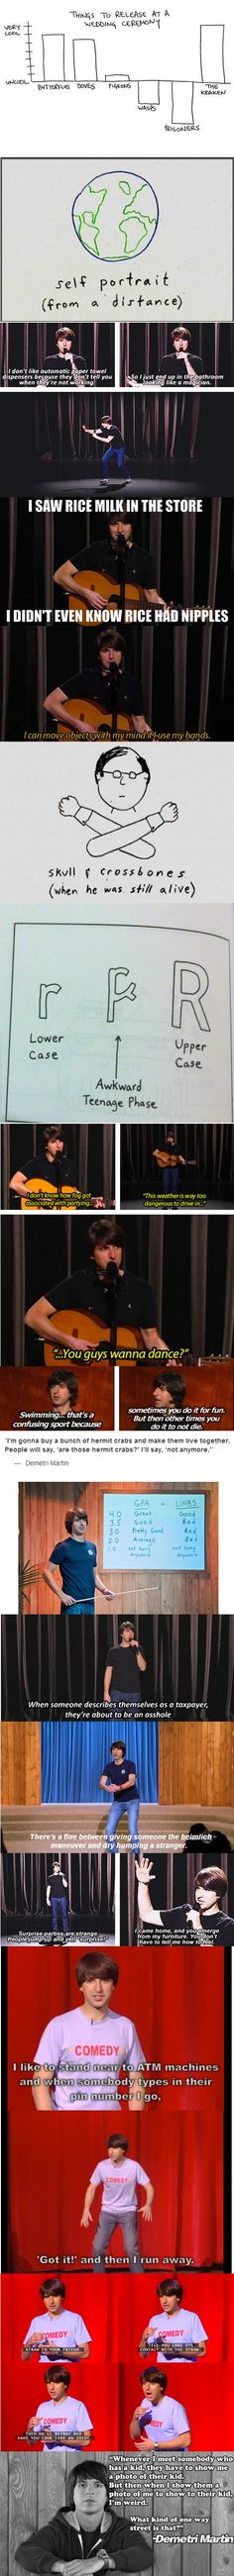 Demetri Martin: One of my all-time favorite comedians.